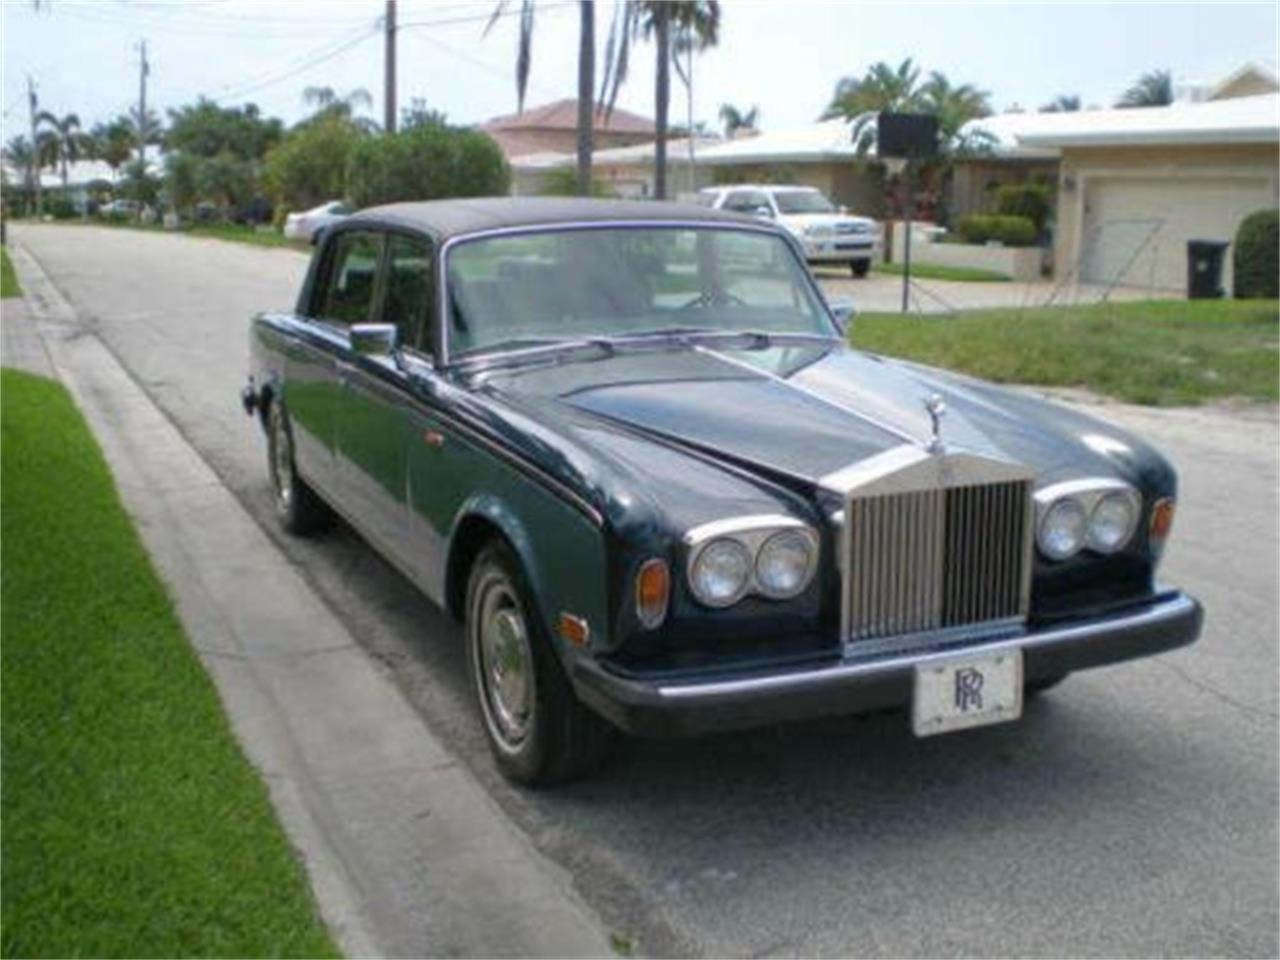 Large Picture of '80 Rolls-Royce Silver Wraith - $24,950.00 - E005